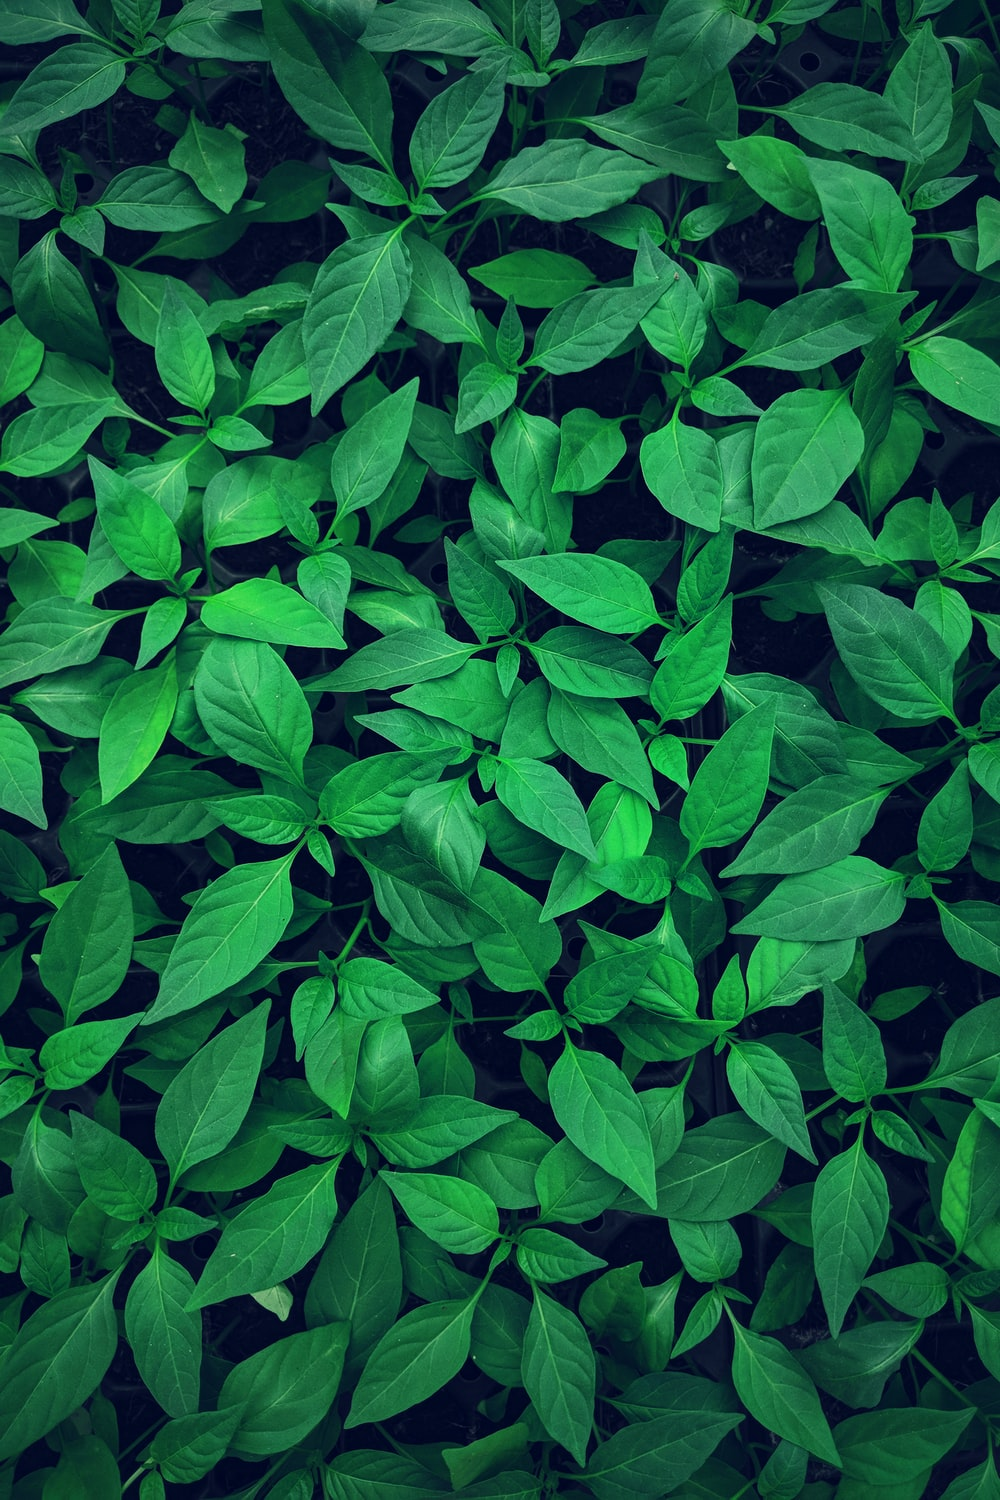 close-up photography of green leafed plant